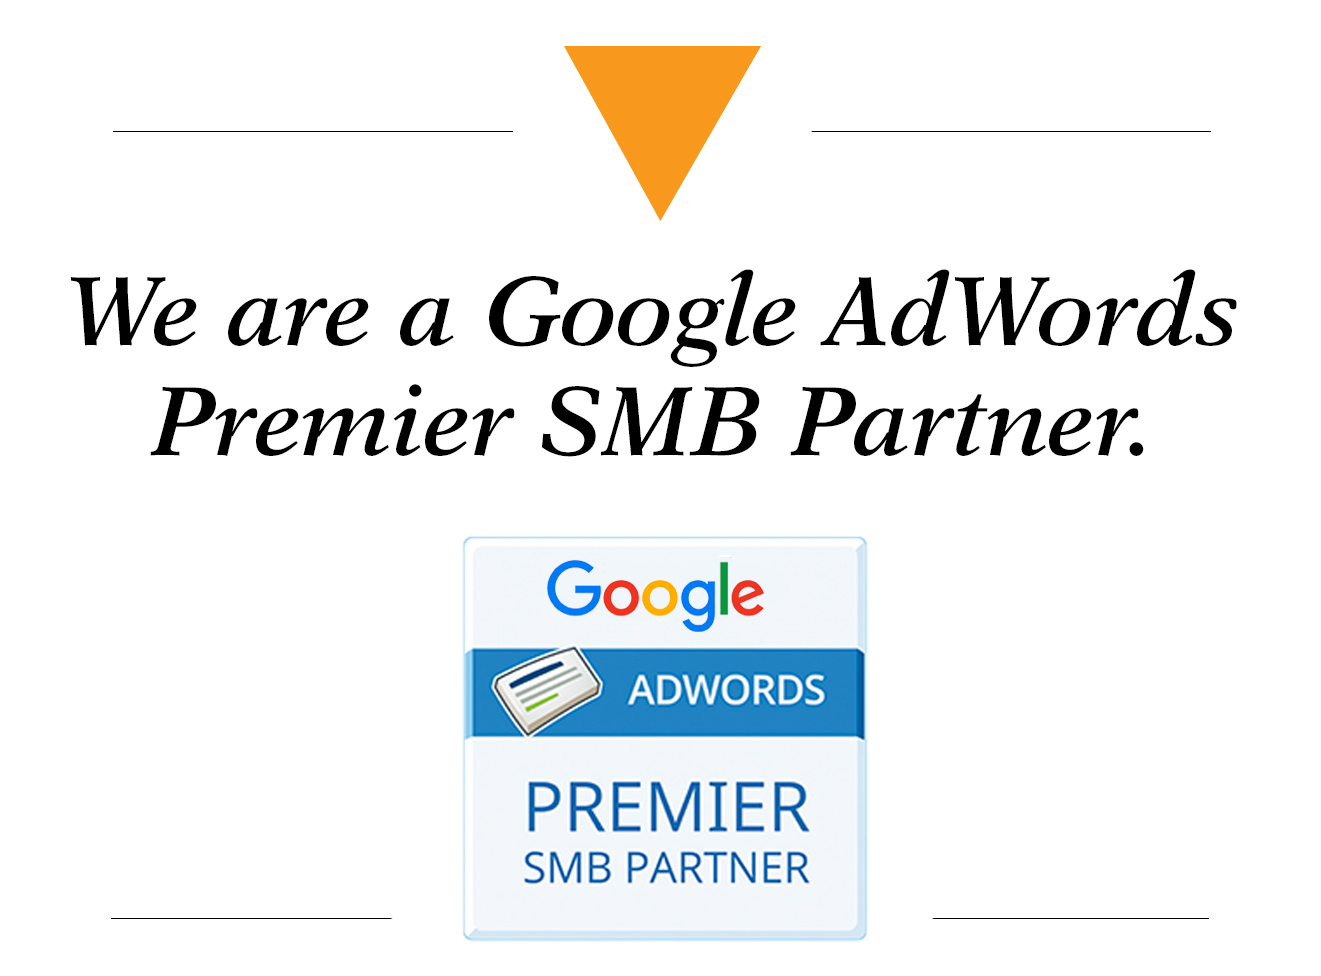 We are a Google AdWords Premier SMB Partner - search engine marketing